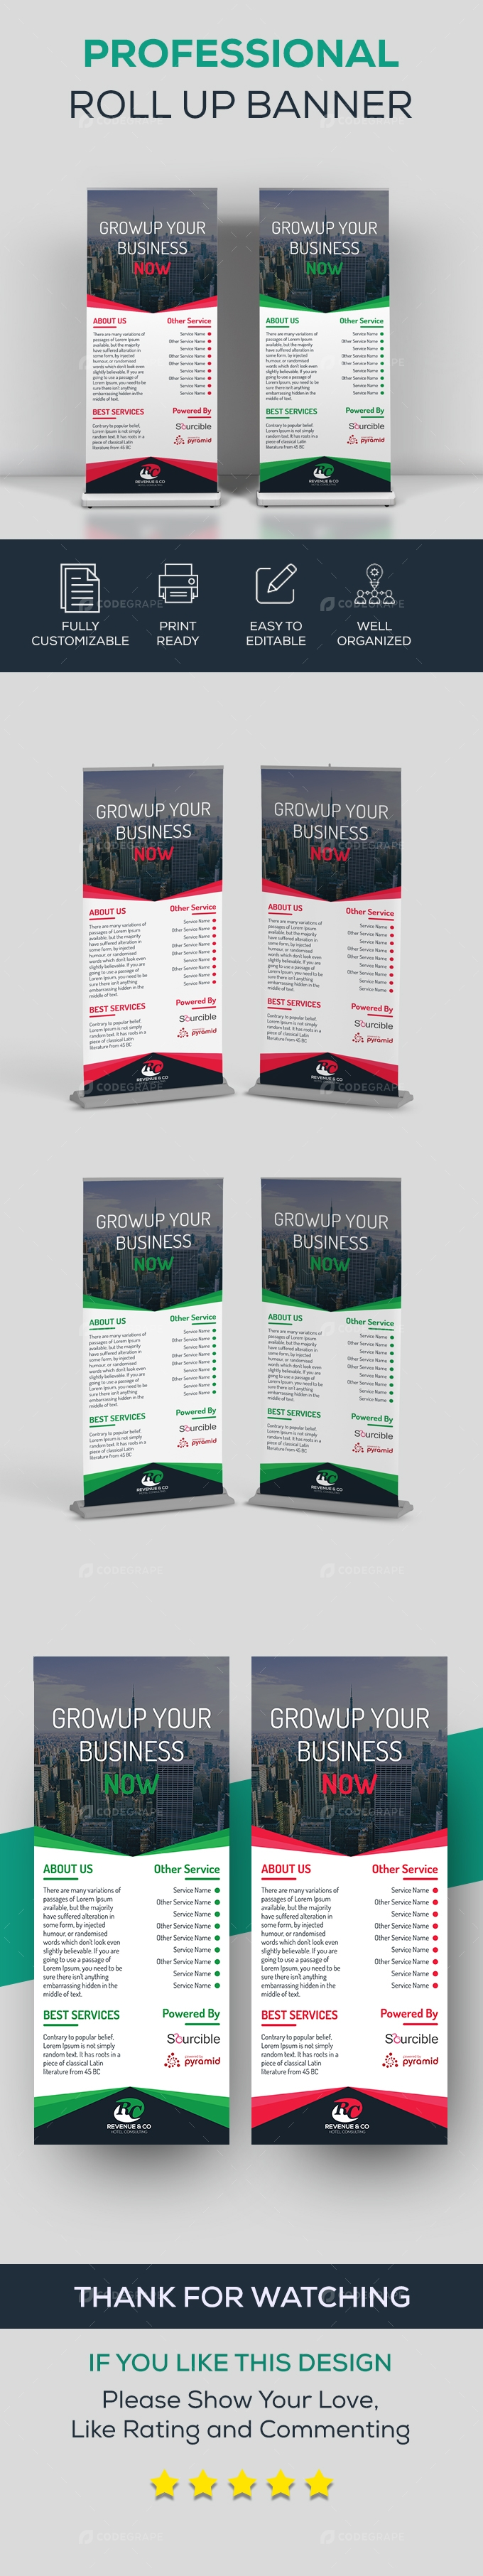 Professional Roll Up Banner Design